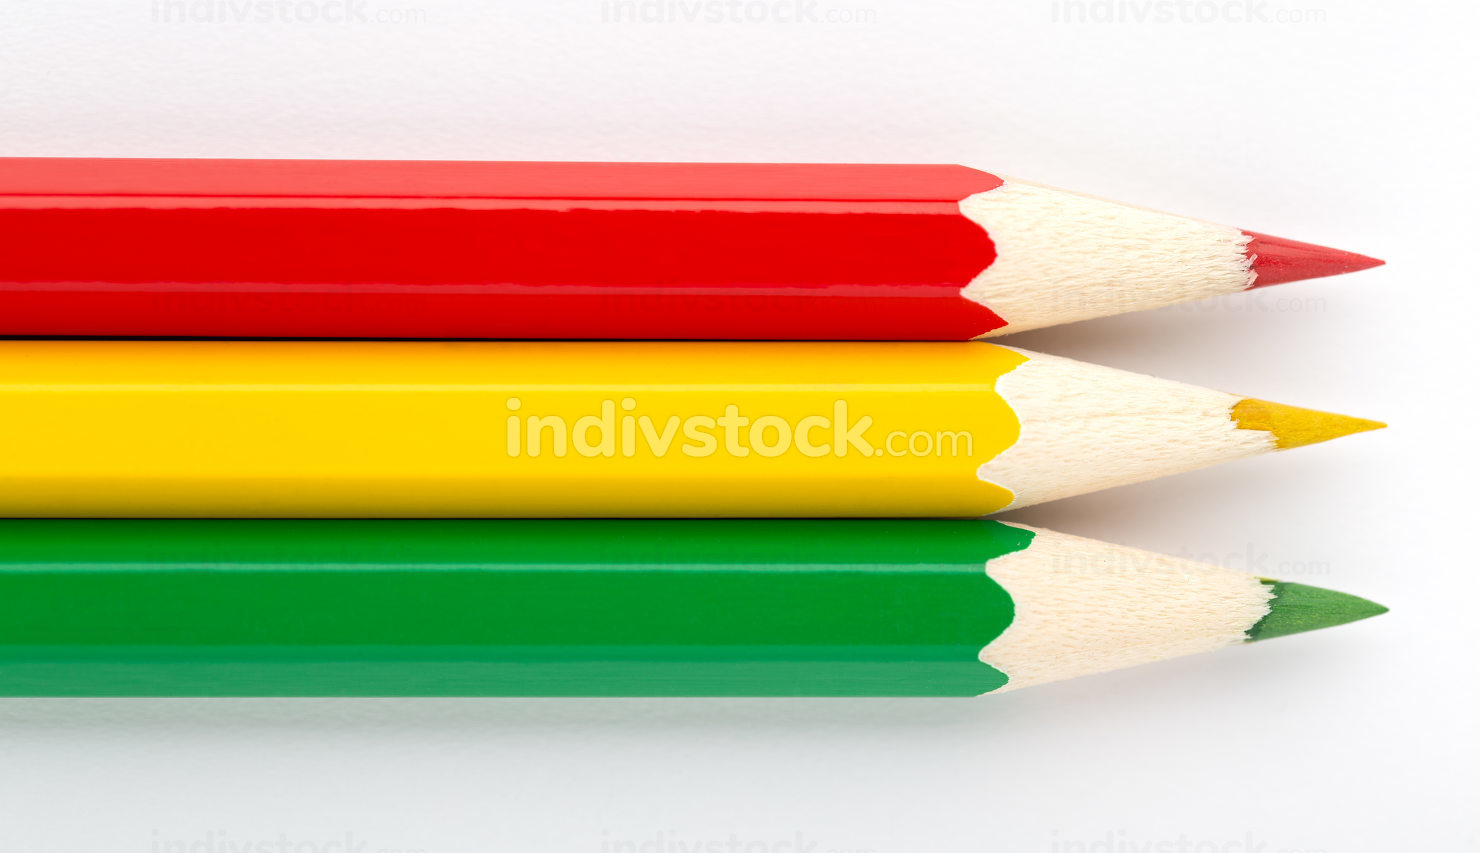 State flags made of colorful wooden pencils Bolivia